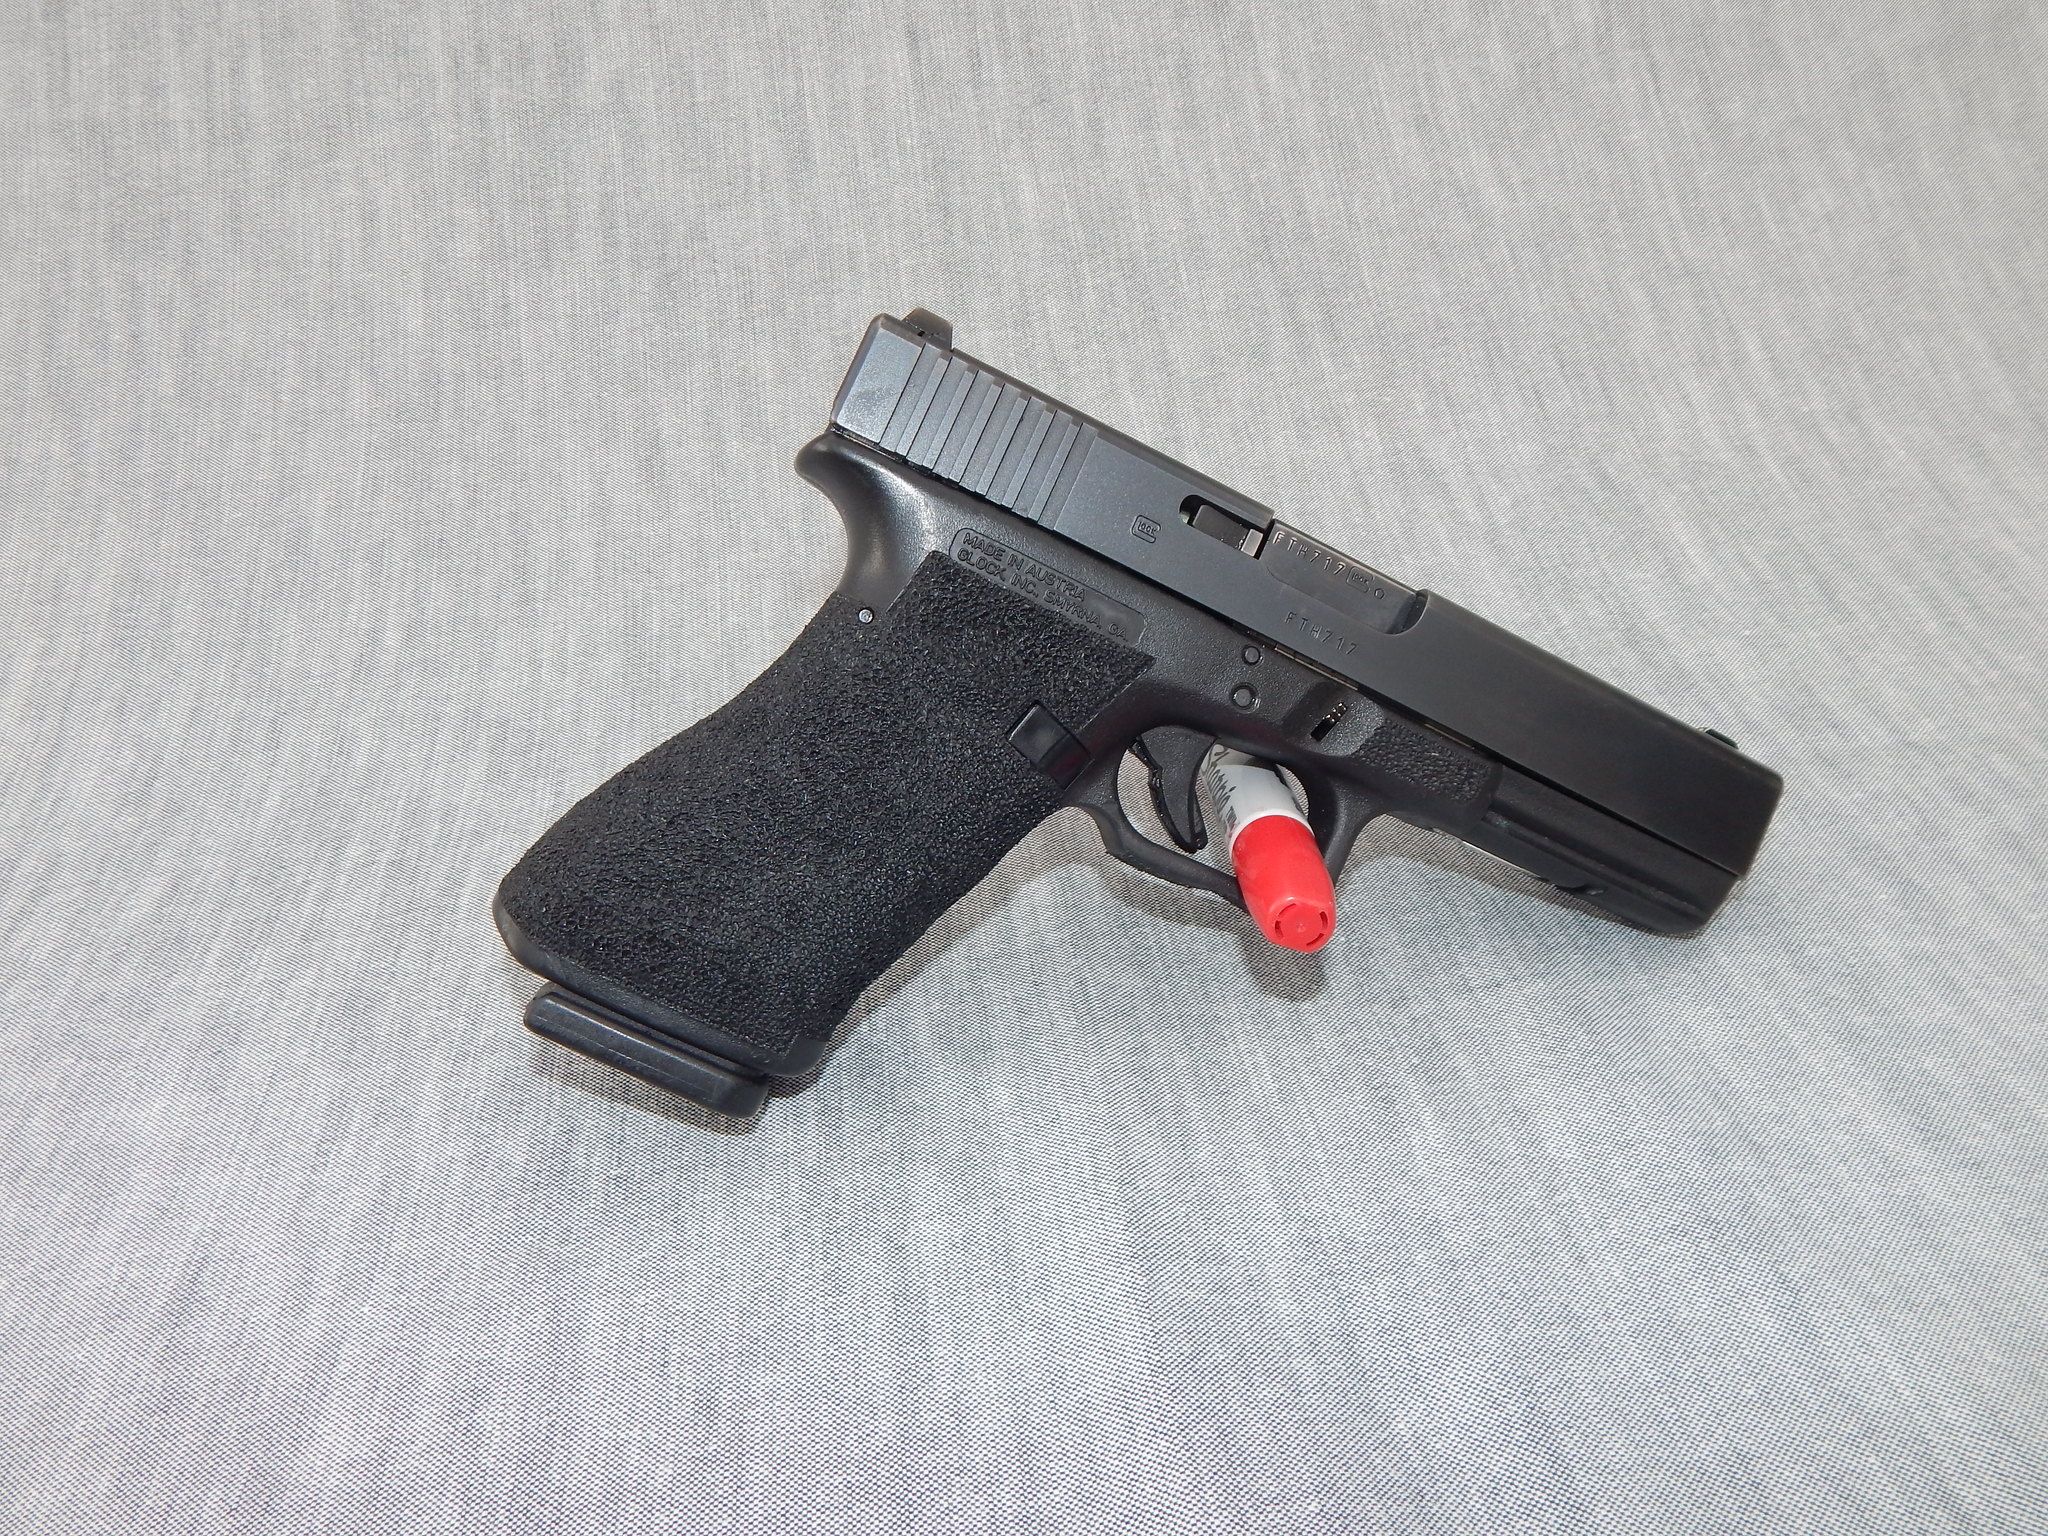 New stippled/reduced Glock 21 | The Leading Glock Forum and ...